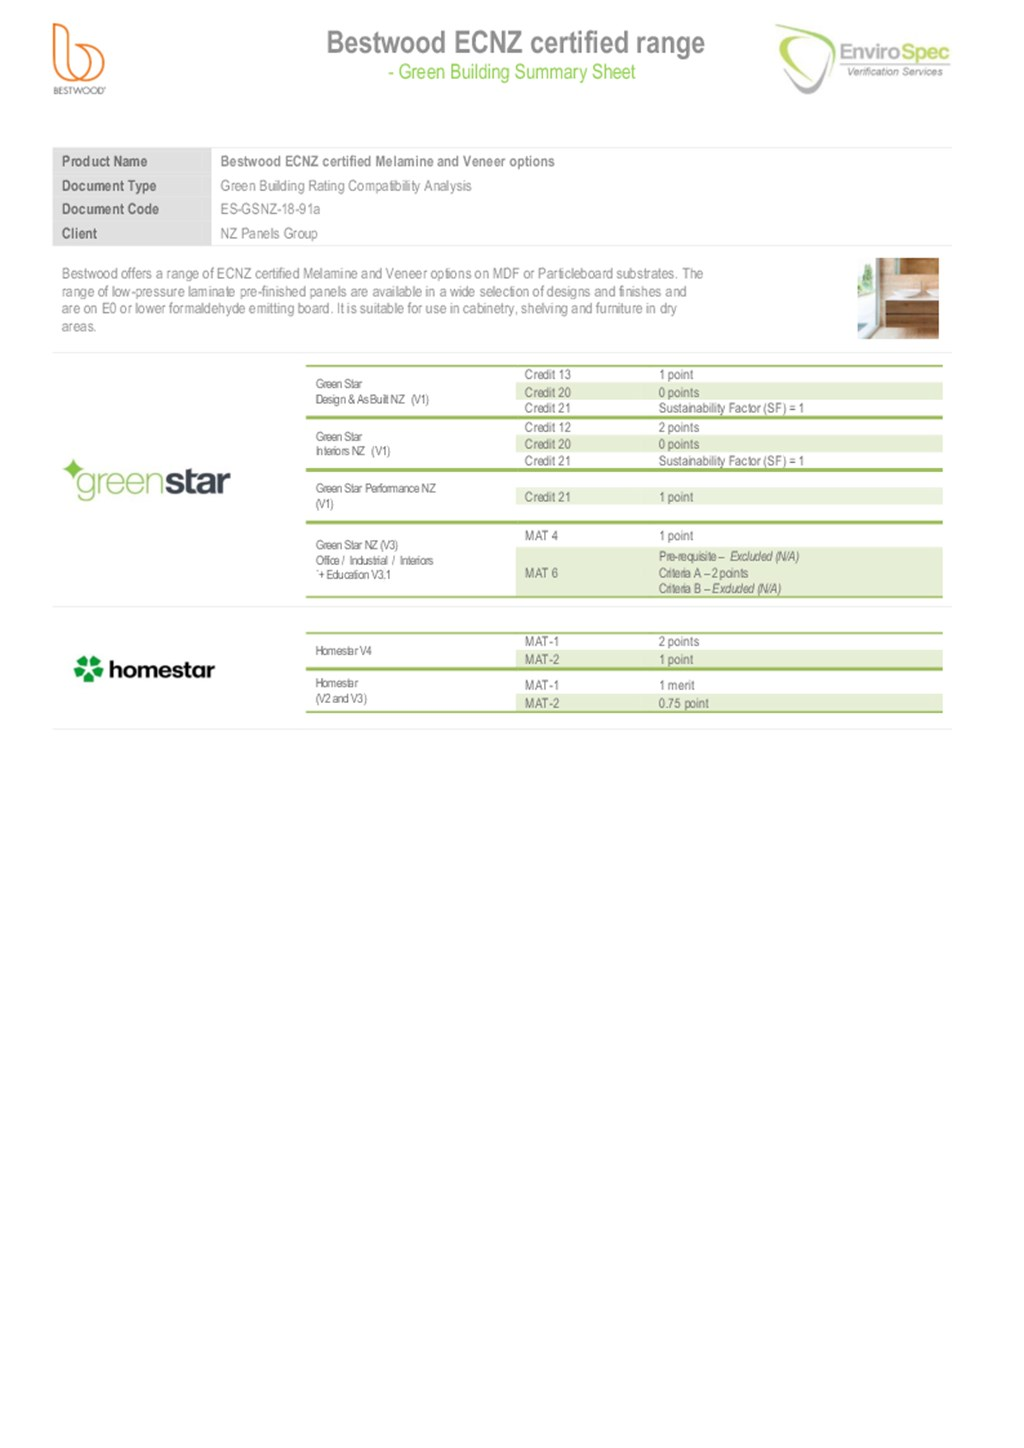 Envirospec Green Building Summary for Veneer and Melamine